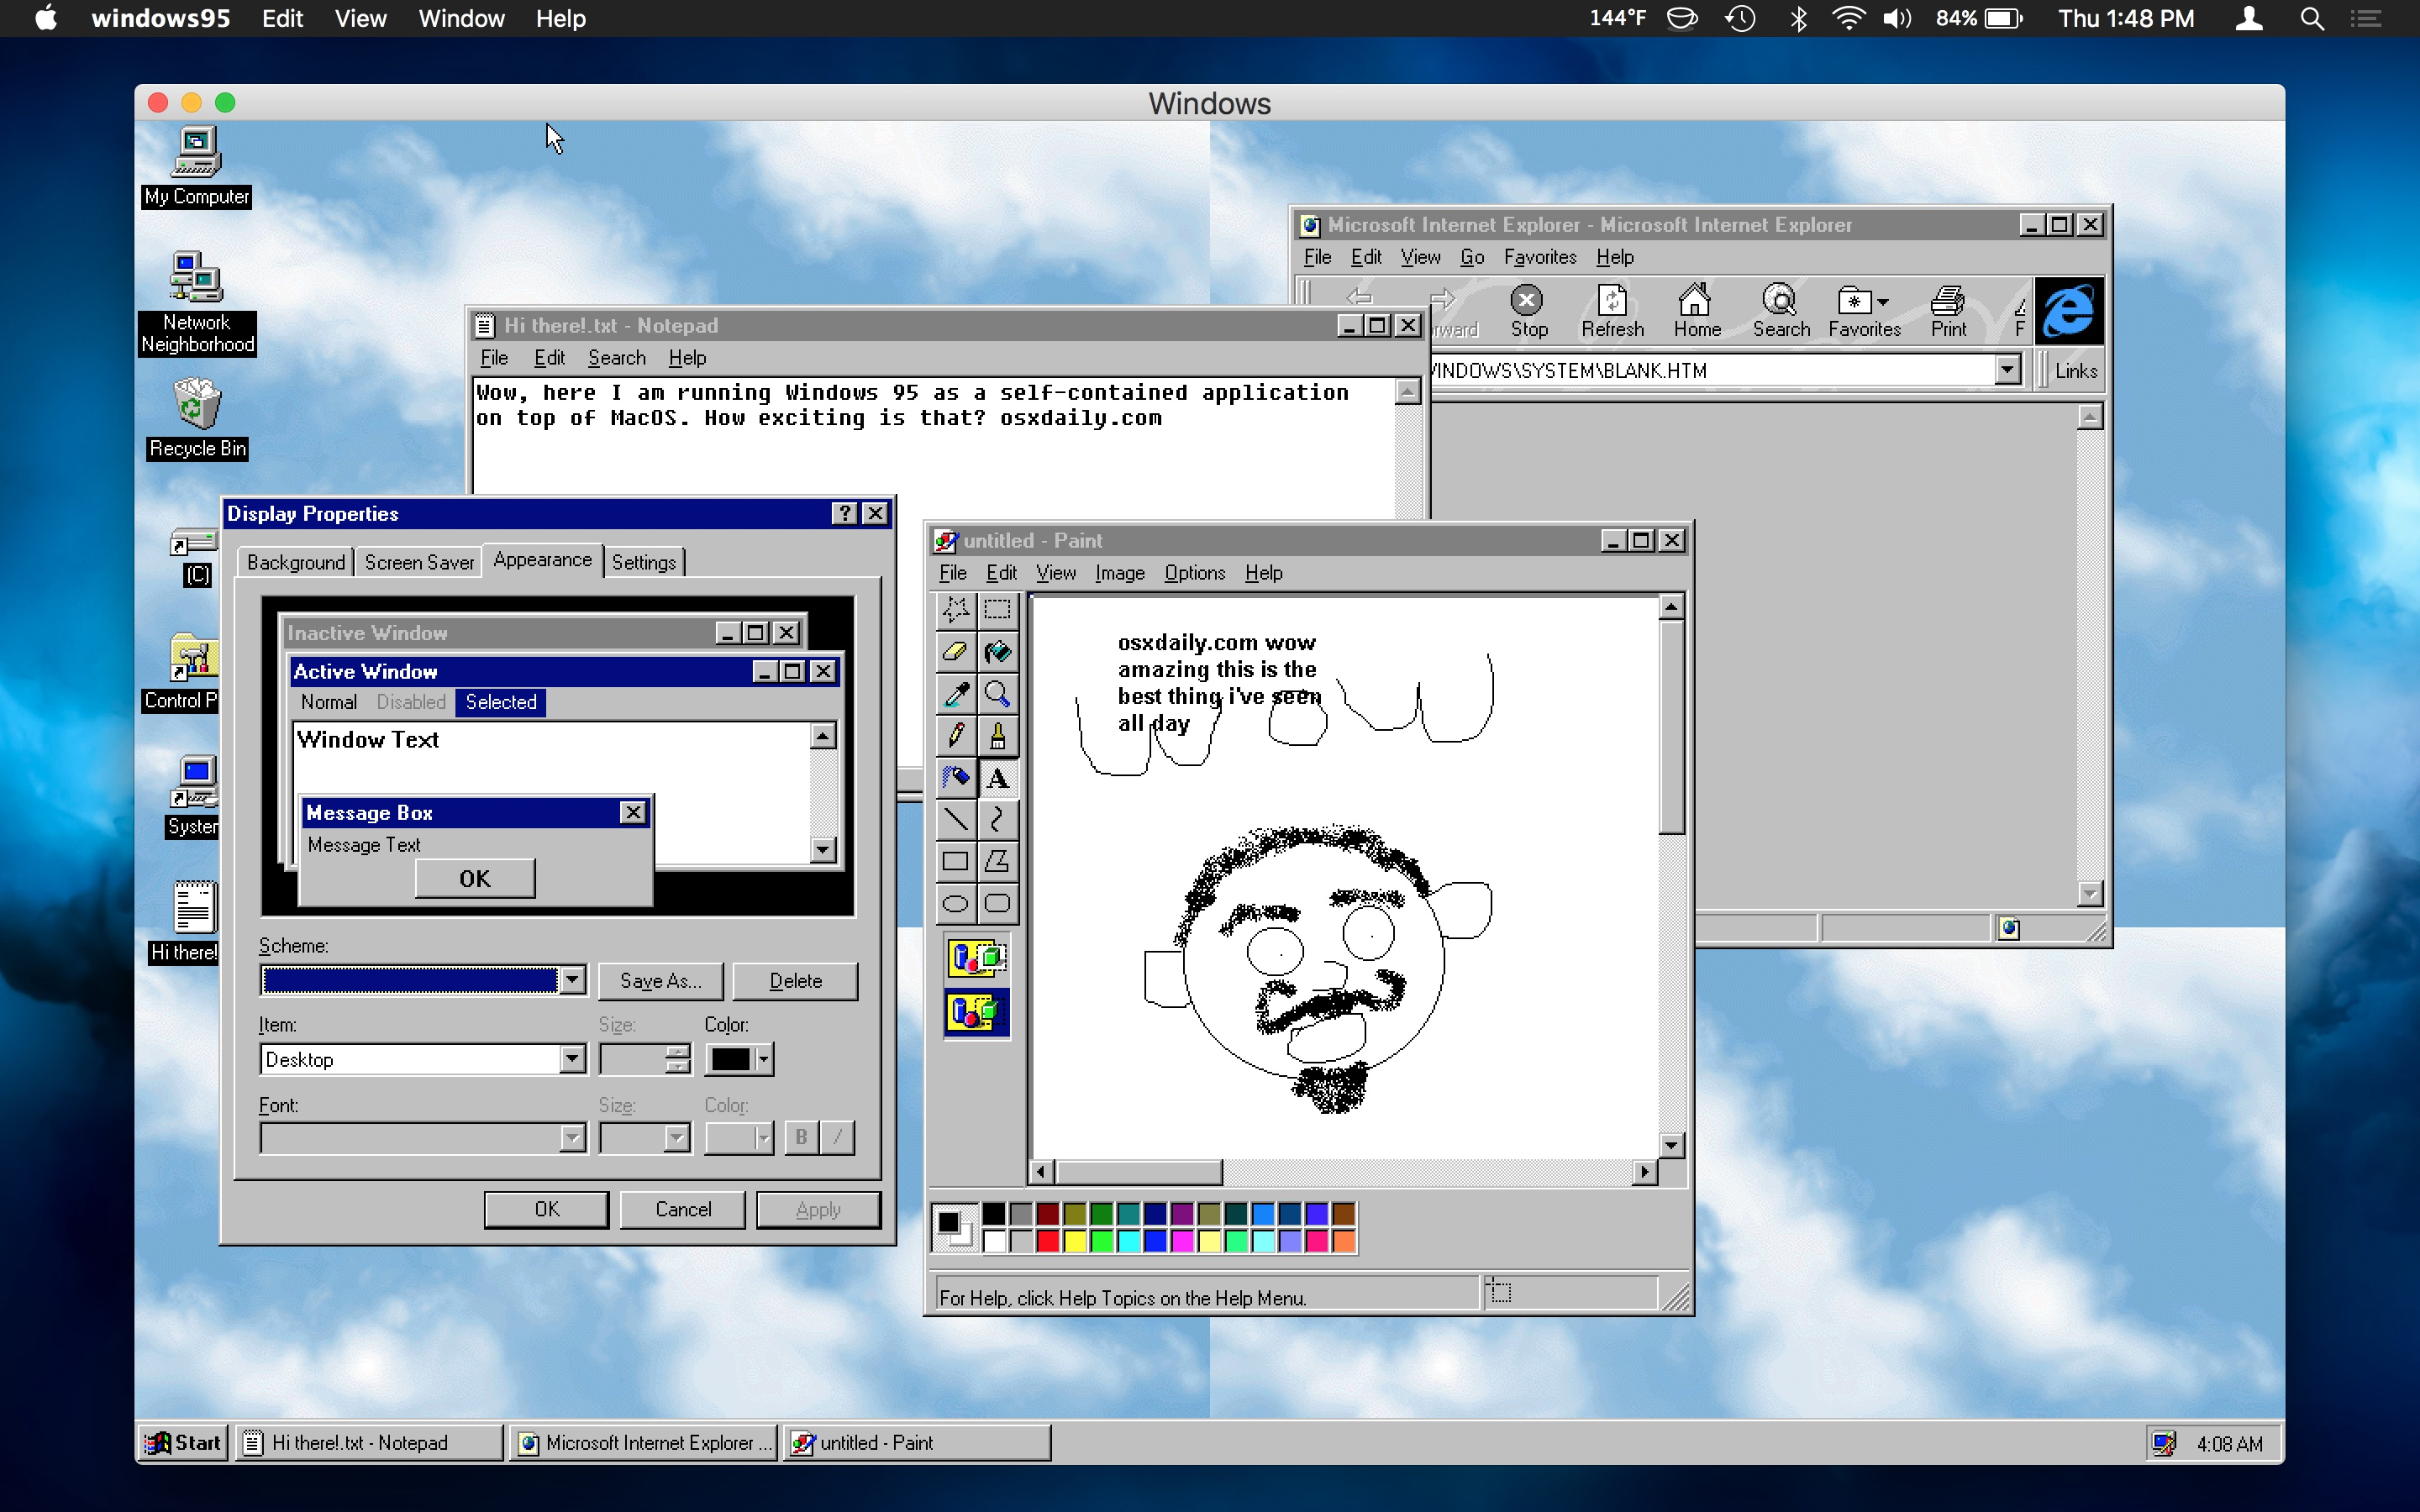 Windows 95 running on modern Mac OS